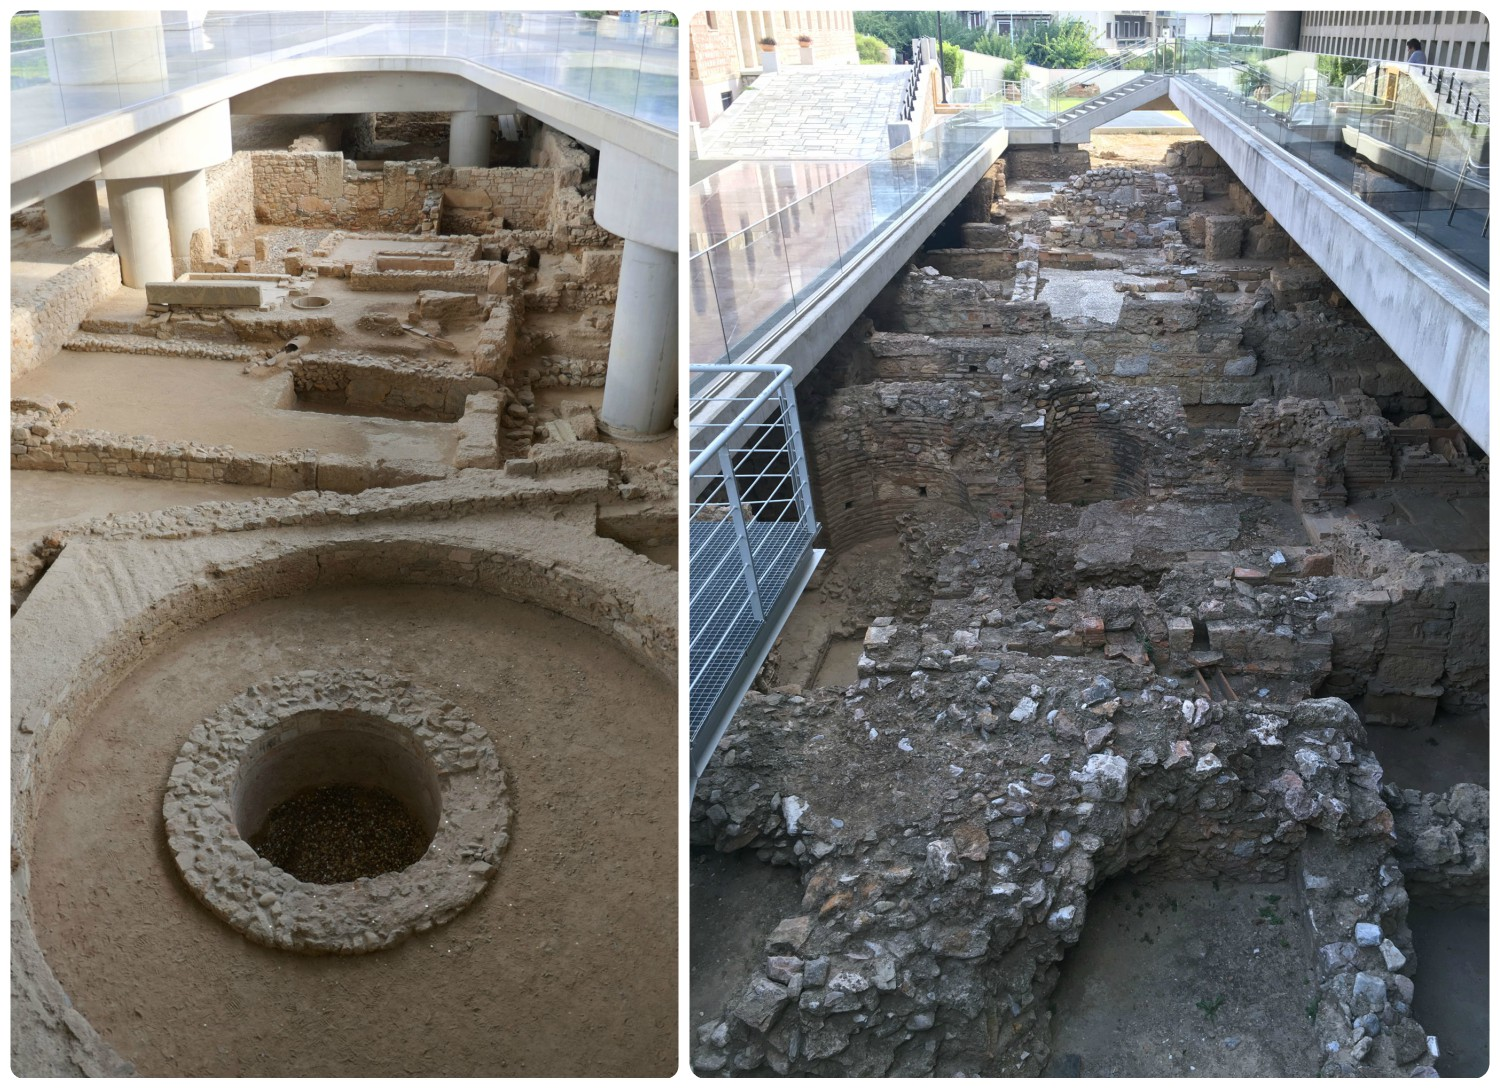 The modern city of Athens, Greece is built upon the ruins of Ancient Athens and the Acropolis Museum does a fantastic job at displaying the ruins that were uncovered beneath the grounds of the museum.